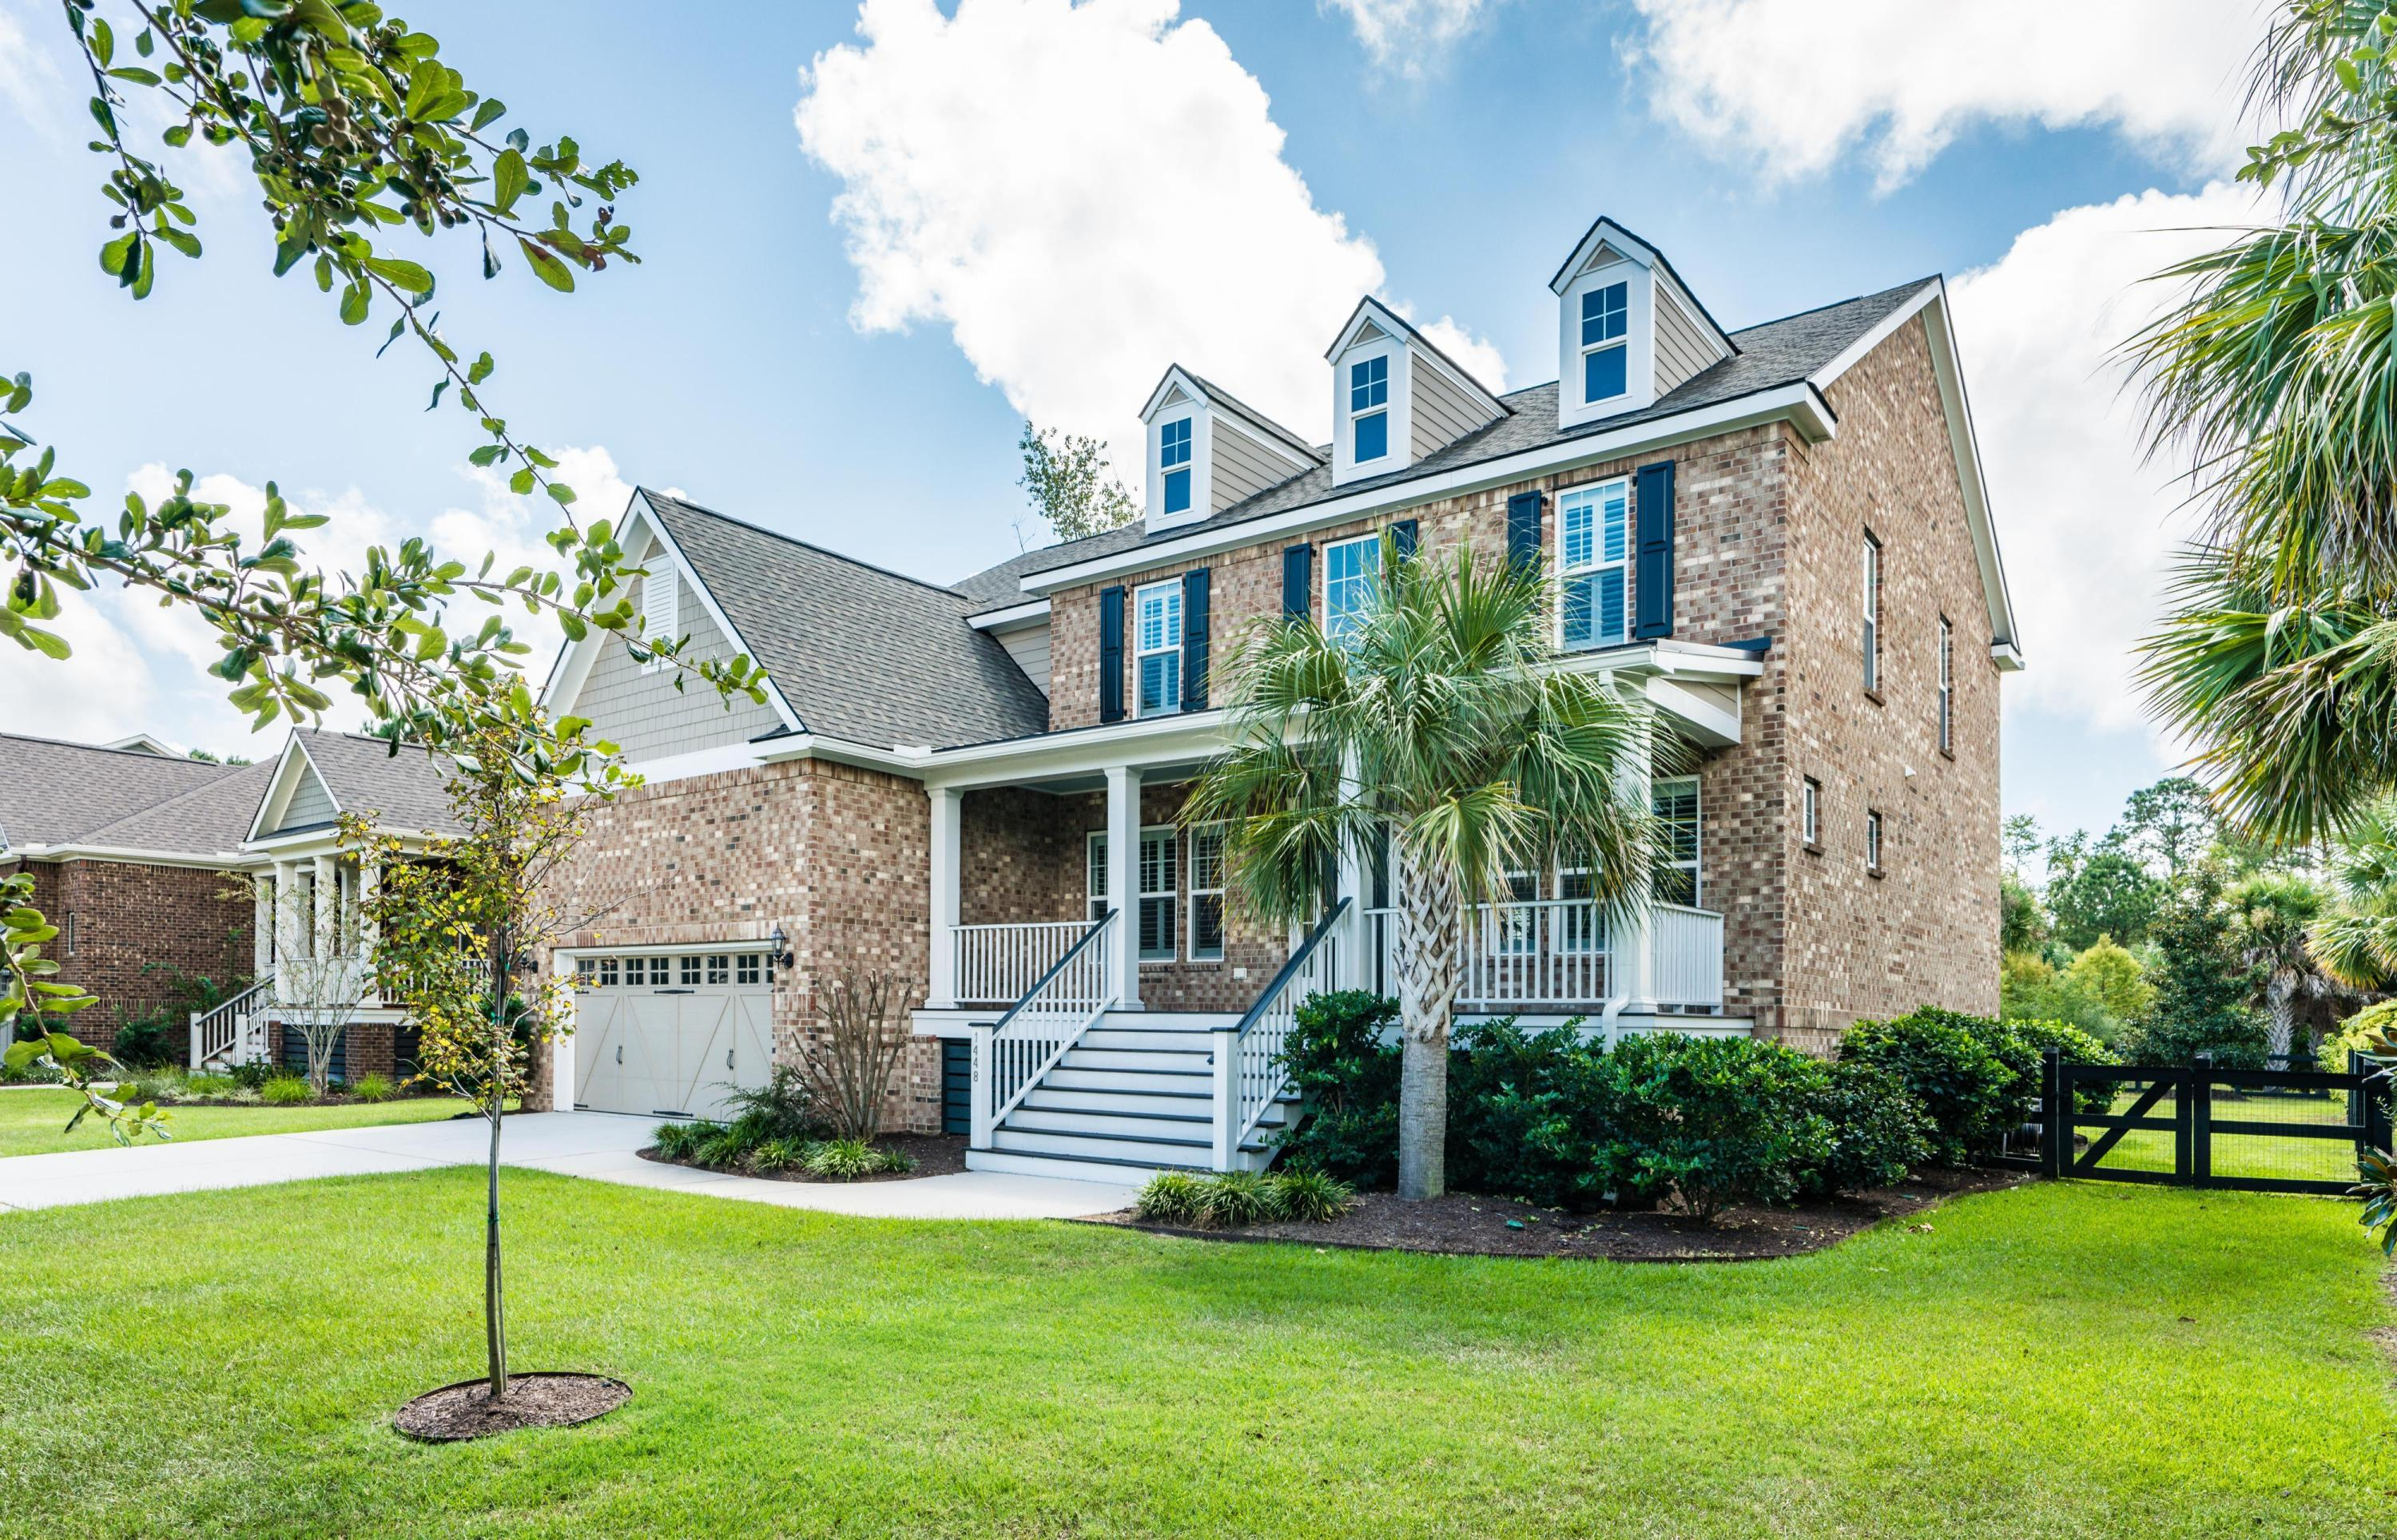 Scotts Creek Homes For Sale - 1448 Scotts Creek, Mount Pleasant, SC - 24